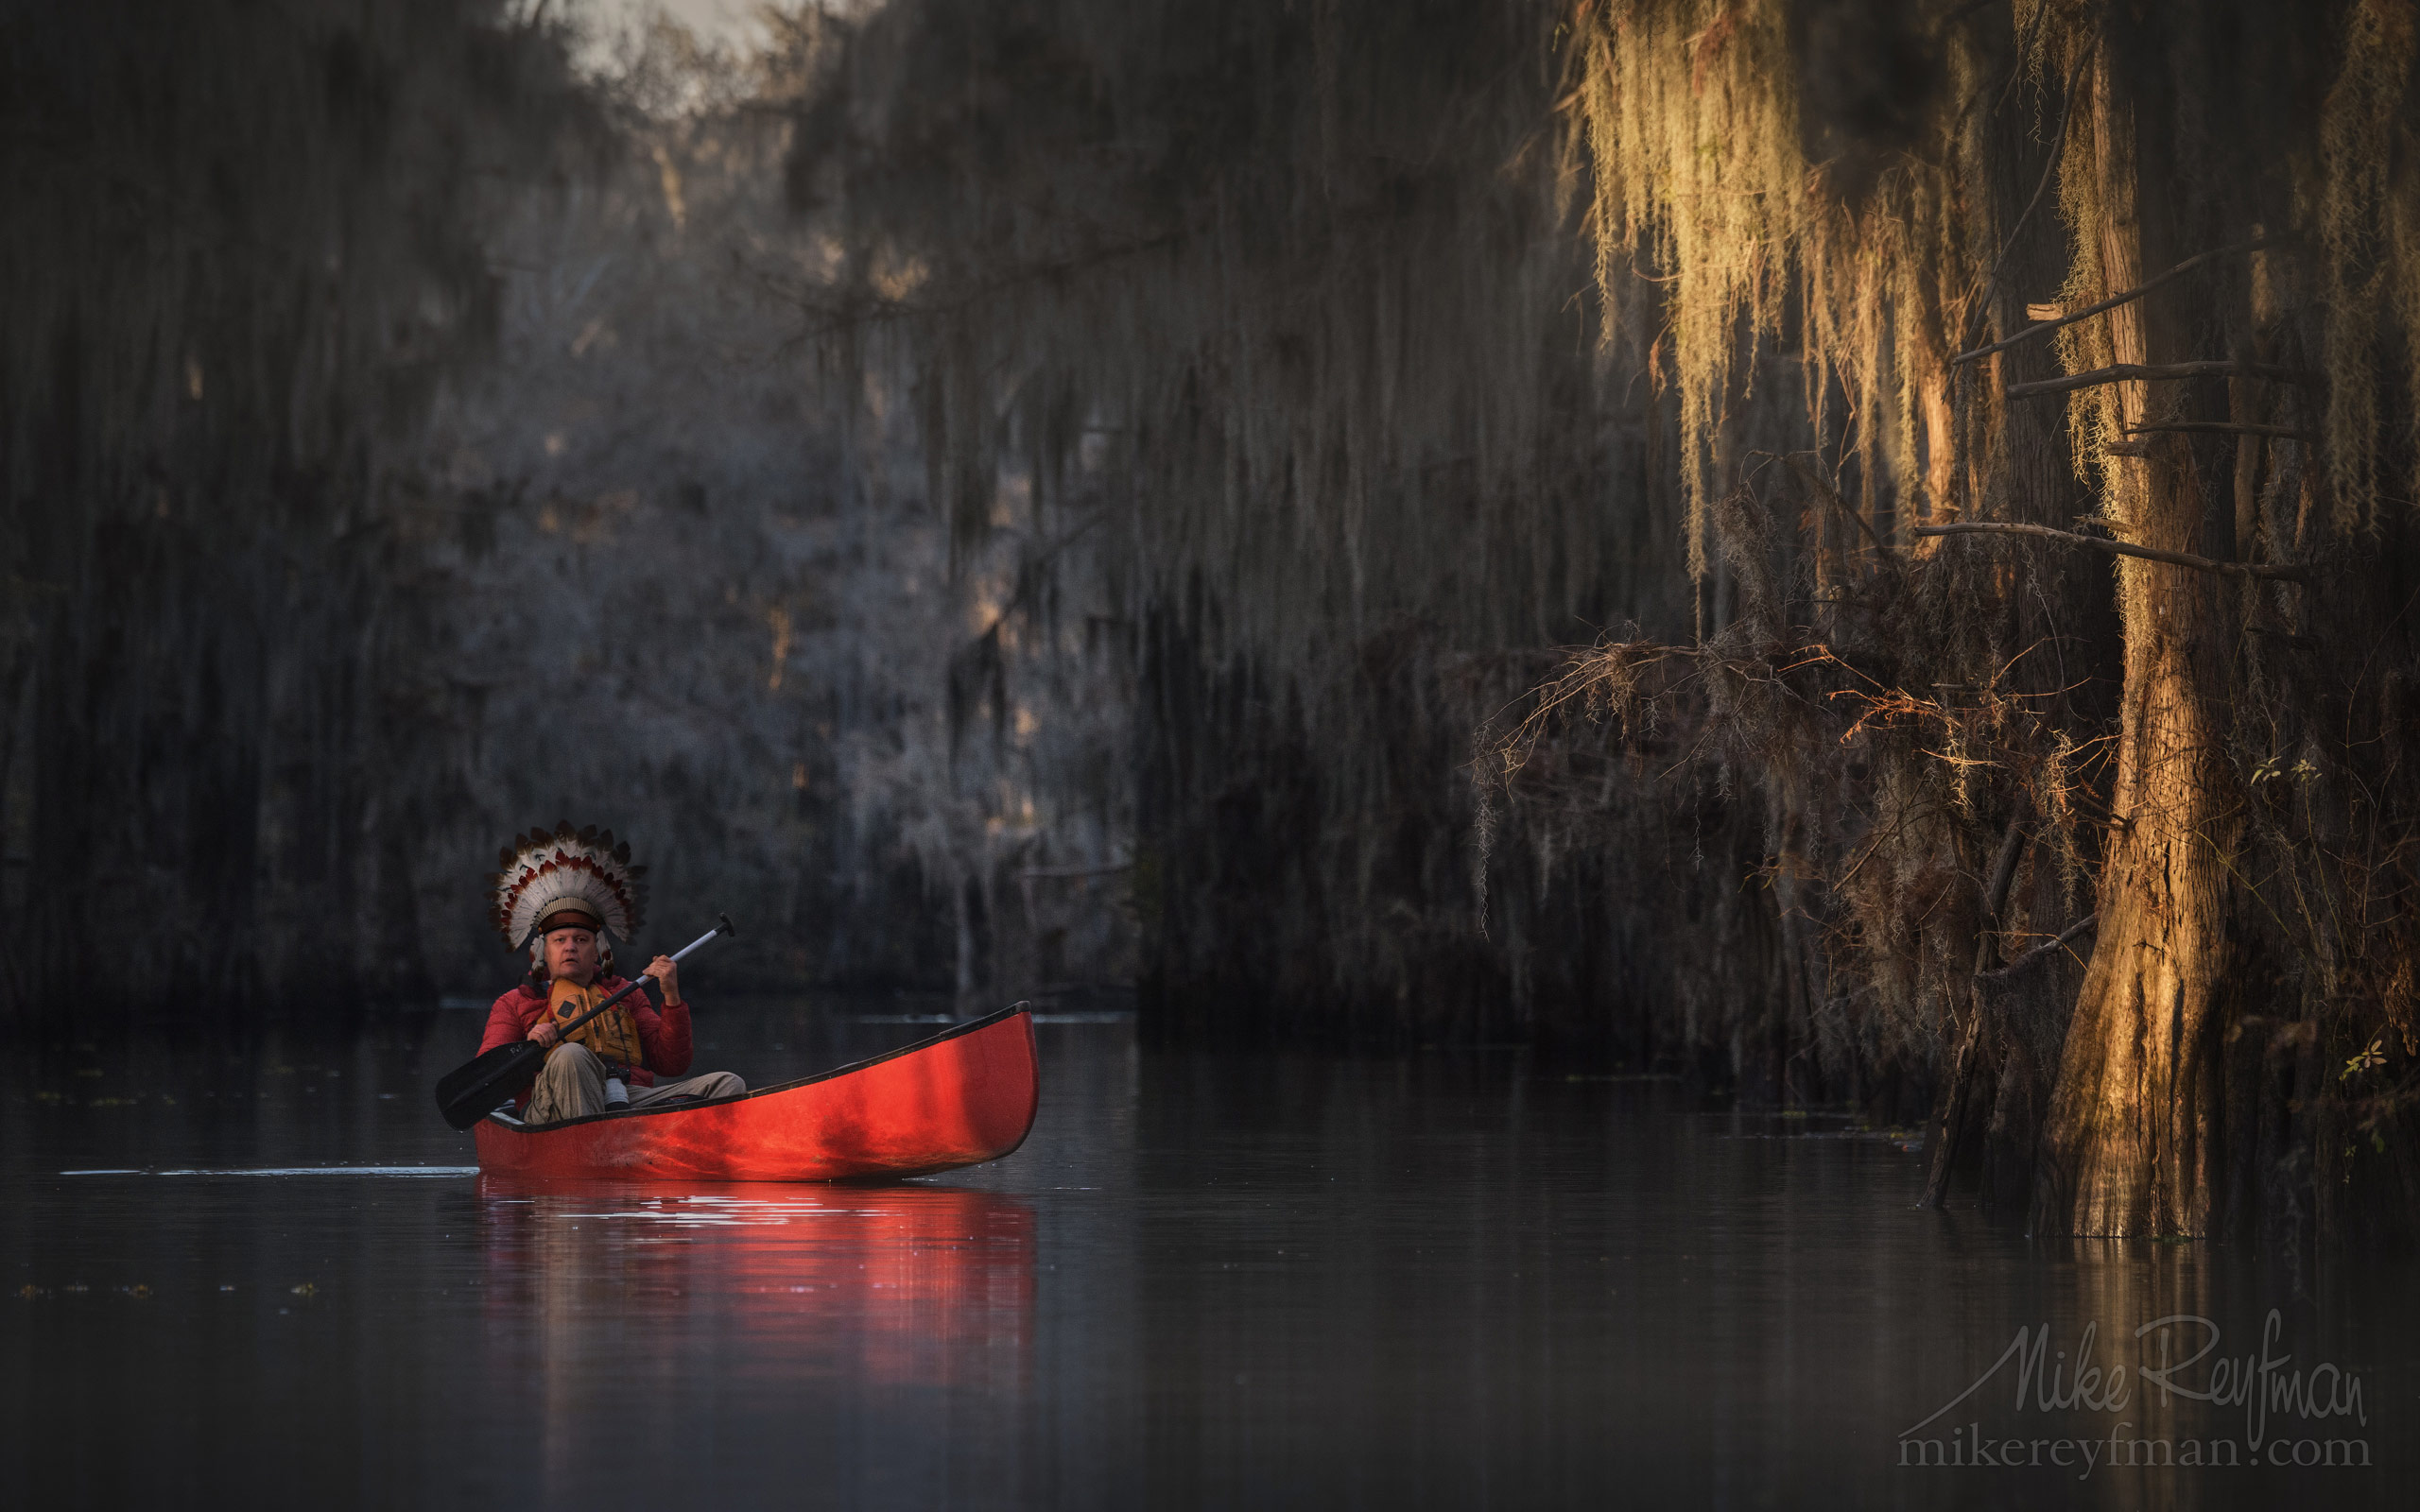 Kayaker wearing Native American Headdress paddling in the Bald Cypress Trees alley. Government Ditch, Lake Caddo, Texas, US 049-LT1-50A3784.jpg - Bold Cypress and Tupelo Trees in the swamps of Atchafalaya River Basin. Caddo, Martin and Fousse Lakes. Texas/Louisiana, USA. - Mike Reyfman Photography